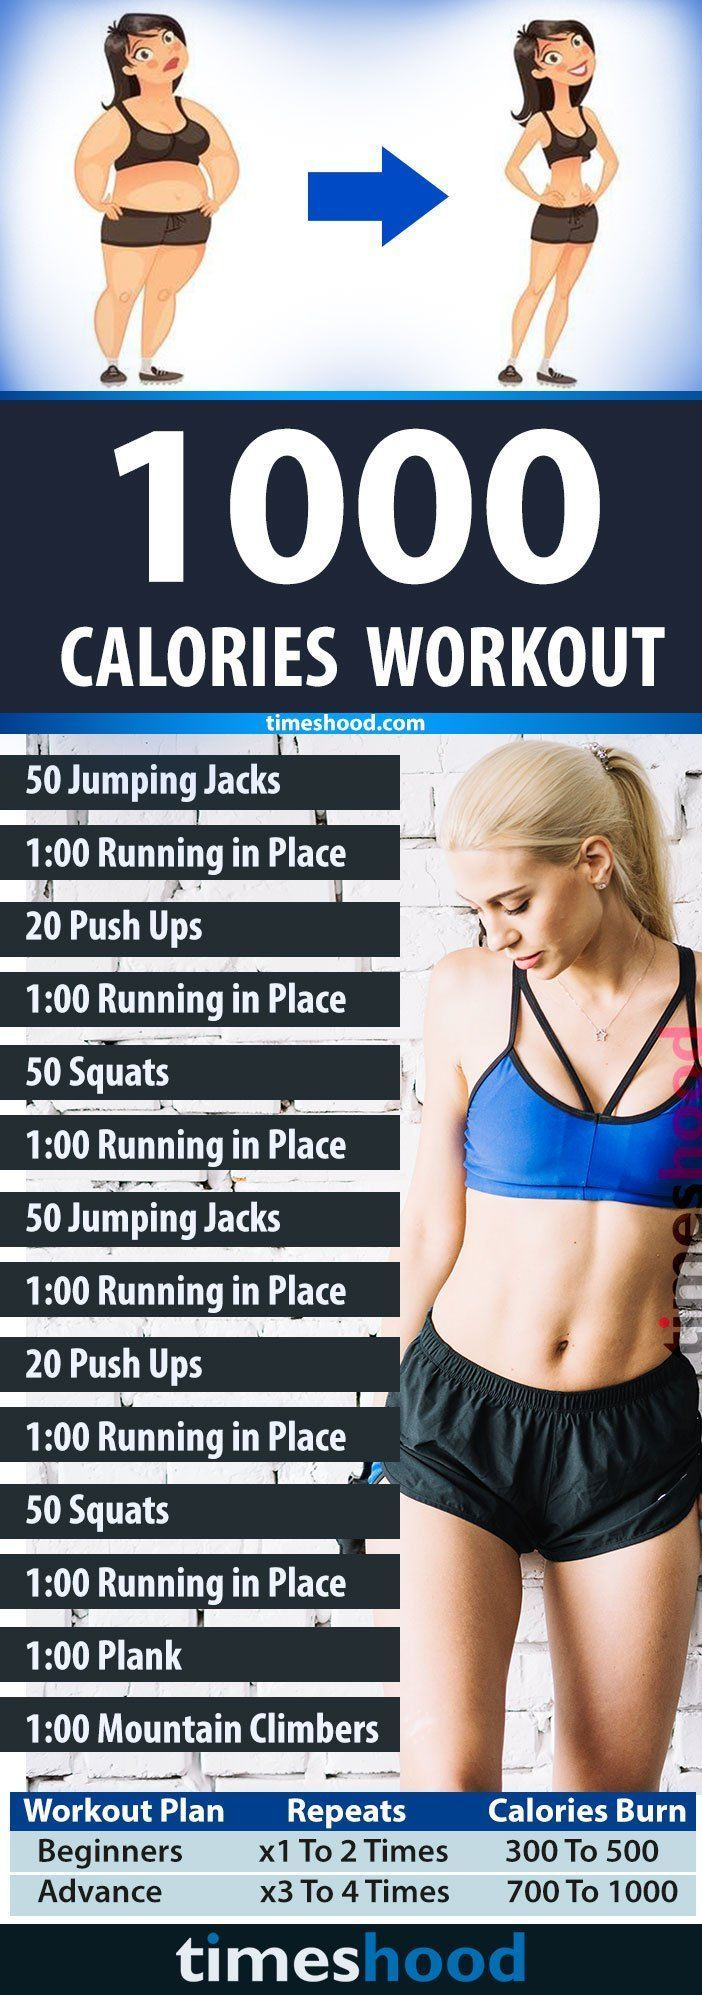 Fast Weight Loss Lose 10 Pounds in 10 Days Diet  Workout  Lifestyle Fast Weight Loss Lose 10 Pounds in 10 Days Diet  Workout  Lifestyle  Timeshood